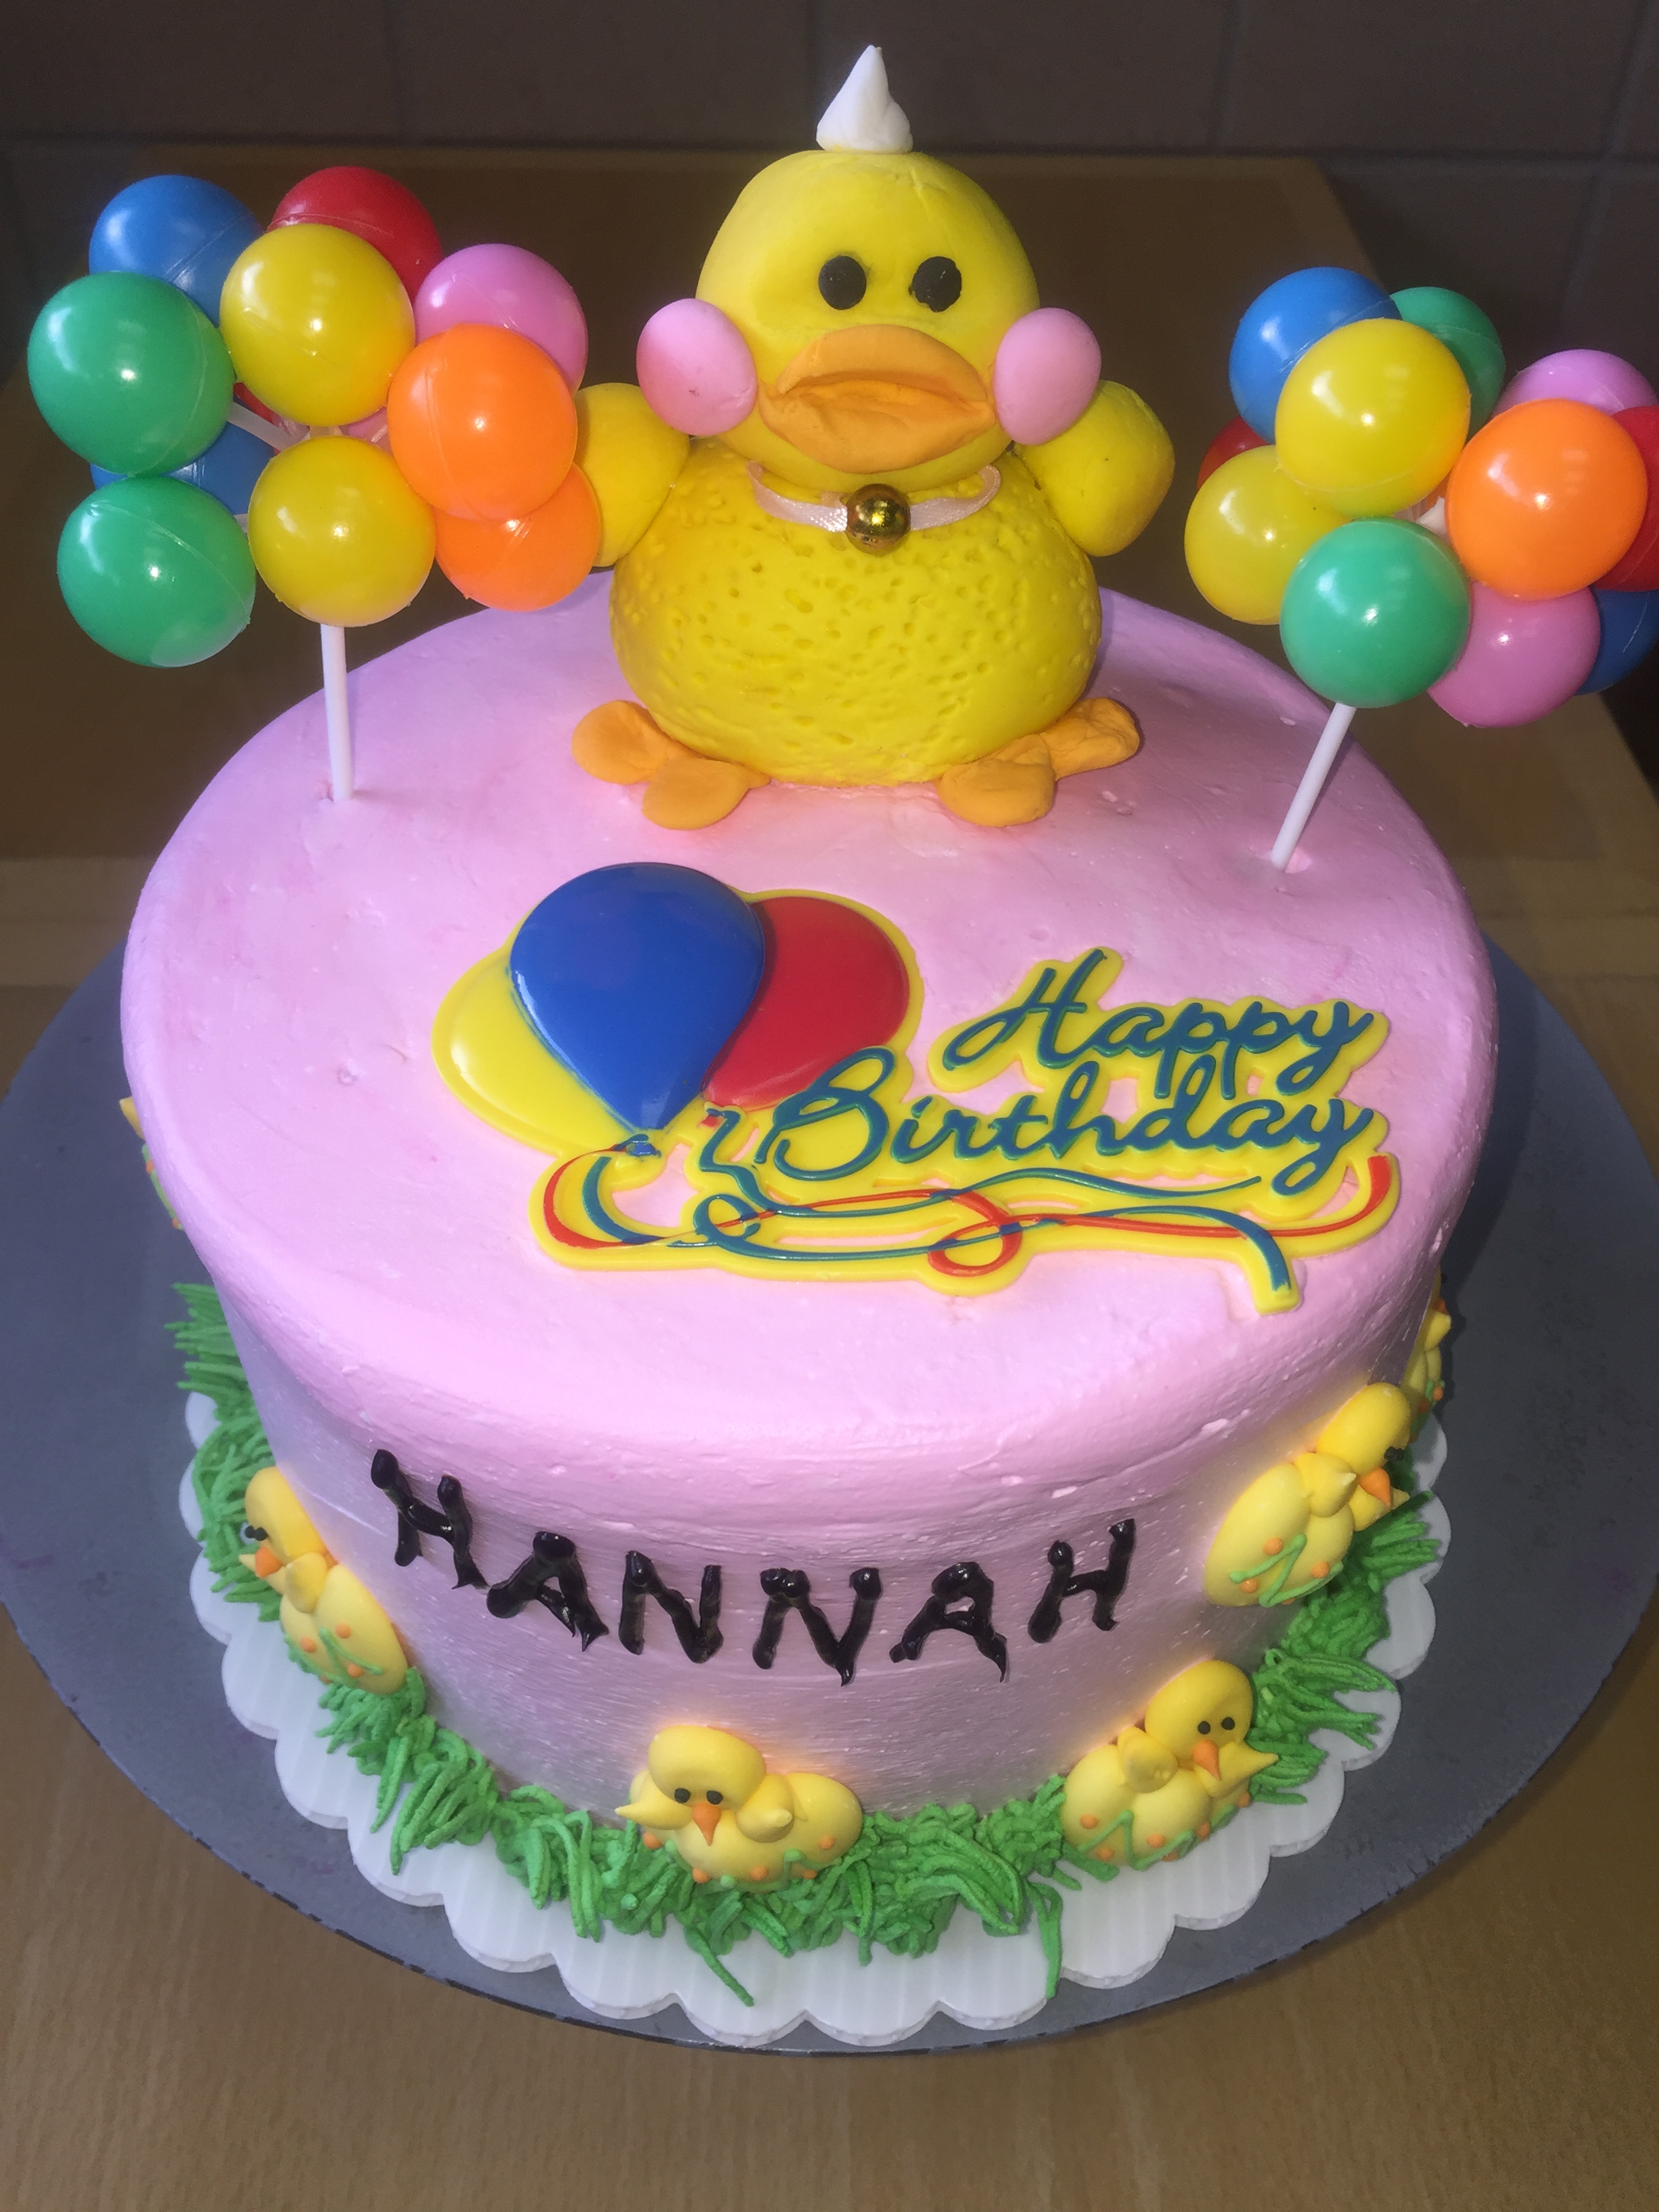 Pleasant Rubber Ducky Birthday Cake Wild Berries Bakery And Cafe Funny Birthday Cards Online Inifofree Goldxyz